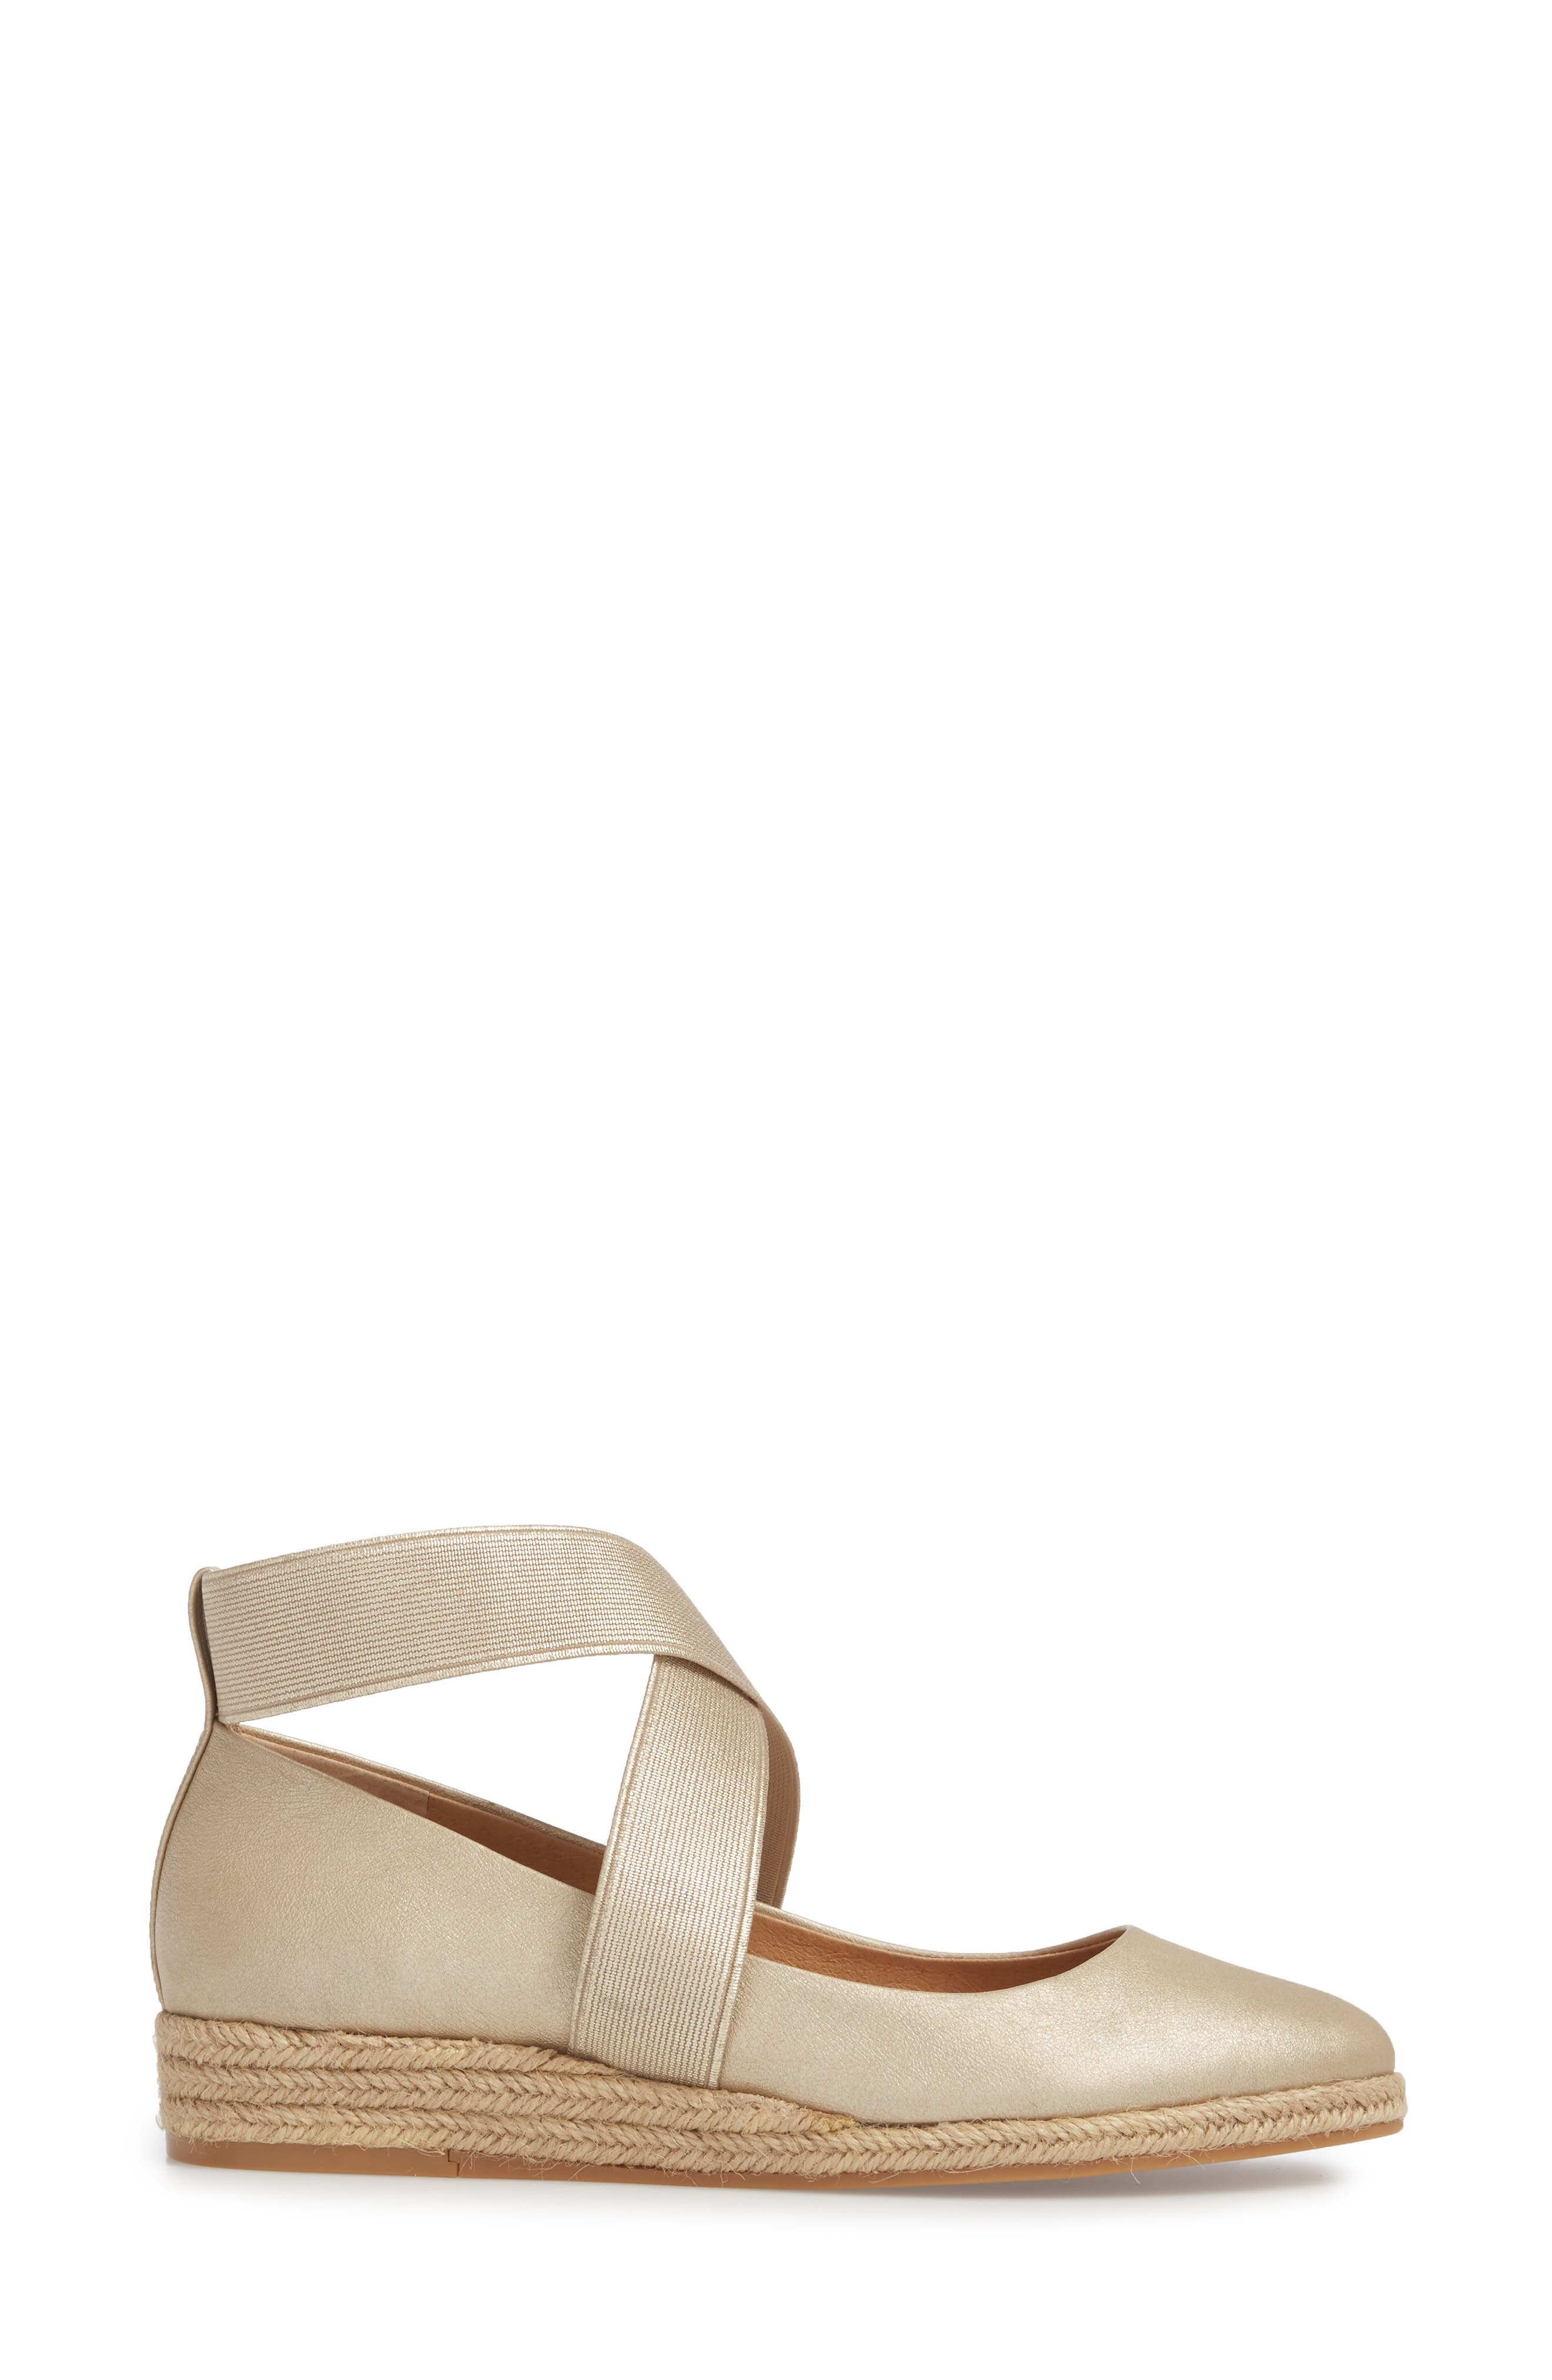 Bellah Espadrille Wedge,                             Alternate thumbnail 3, color,                             Soft Gold Leather